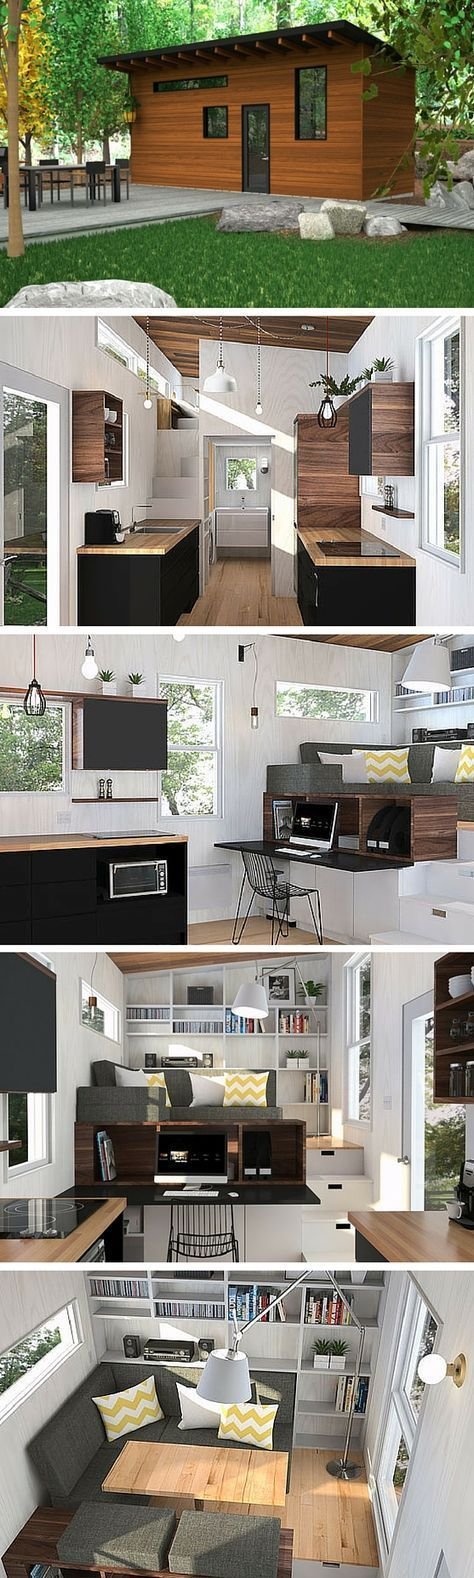 The Atelier Praxis, a modular tiny home manufactured exclusively by Minimalist in Quebec City. A 180 sq ft home with an innovative design to maximize space.